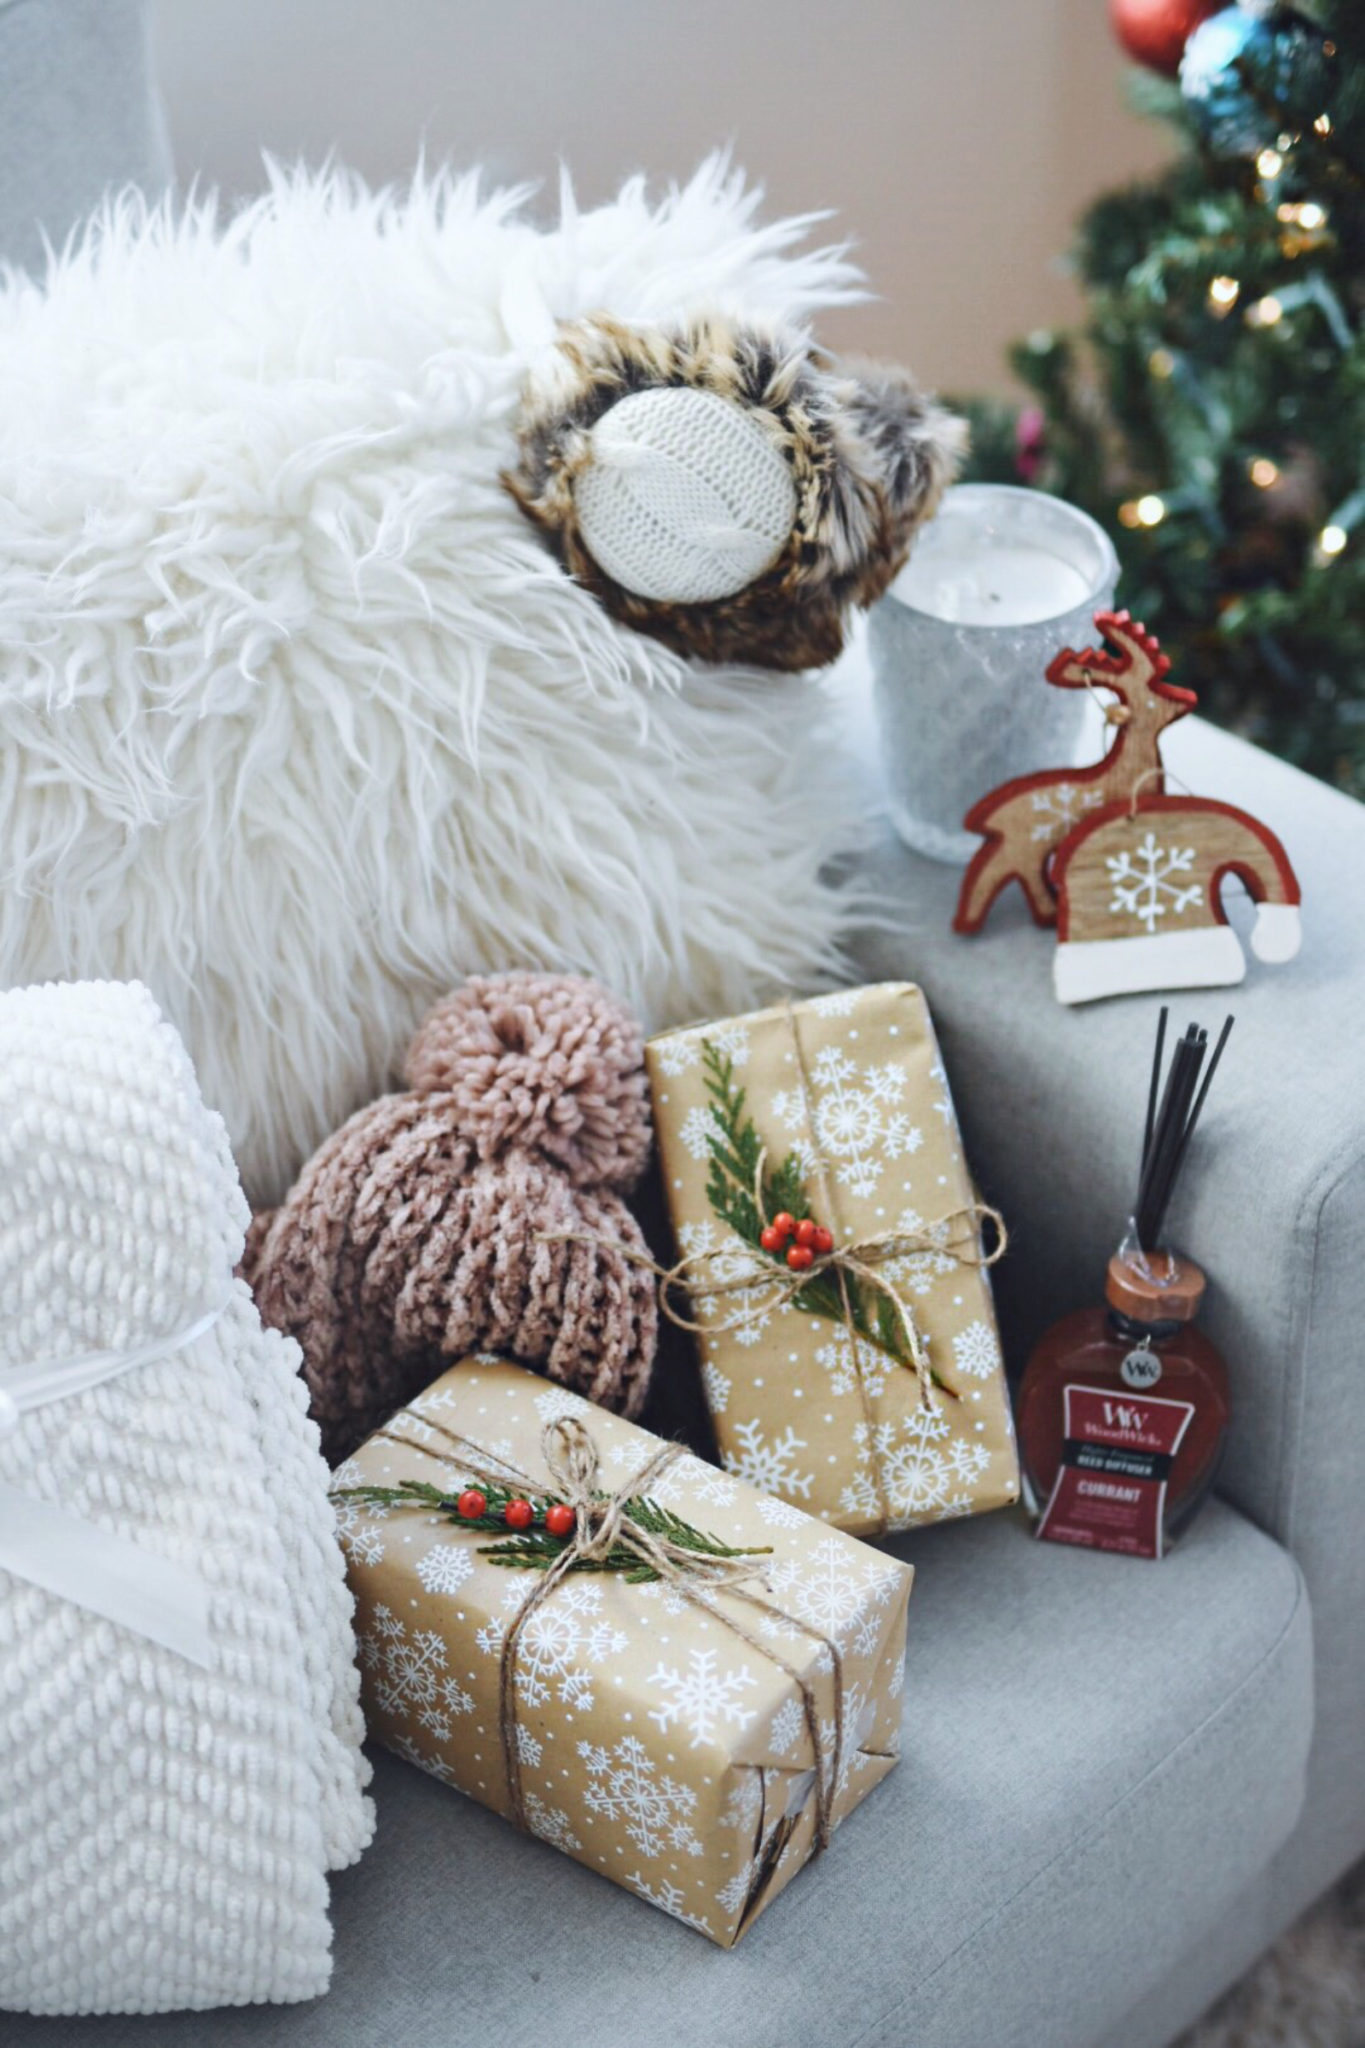 Cracker Barrel Christmas.Gifts Ideas For Her Via Cracker Barrel Chic Talk